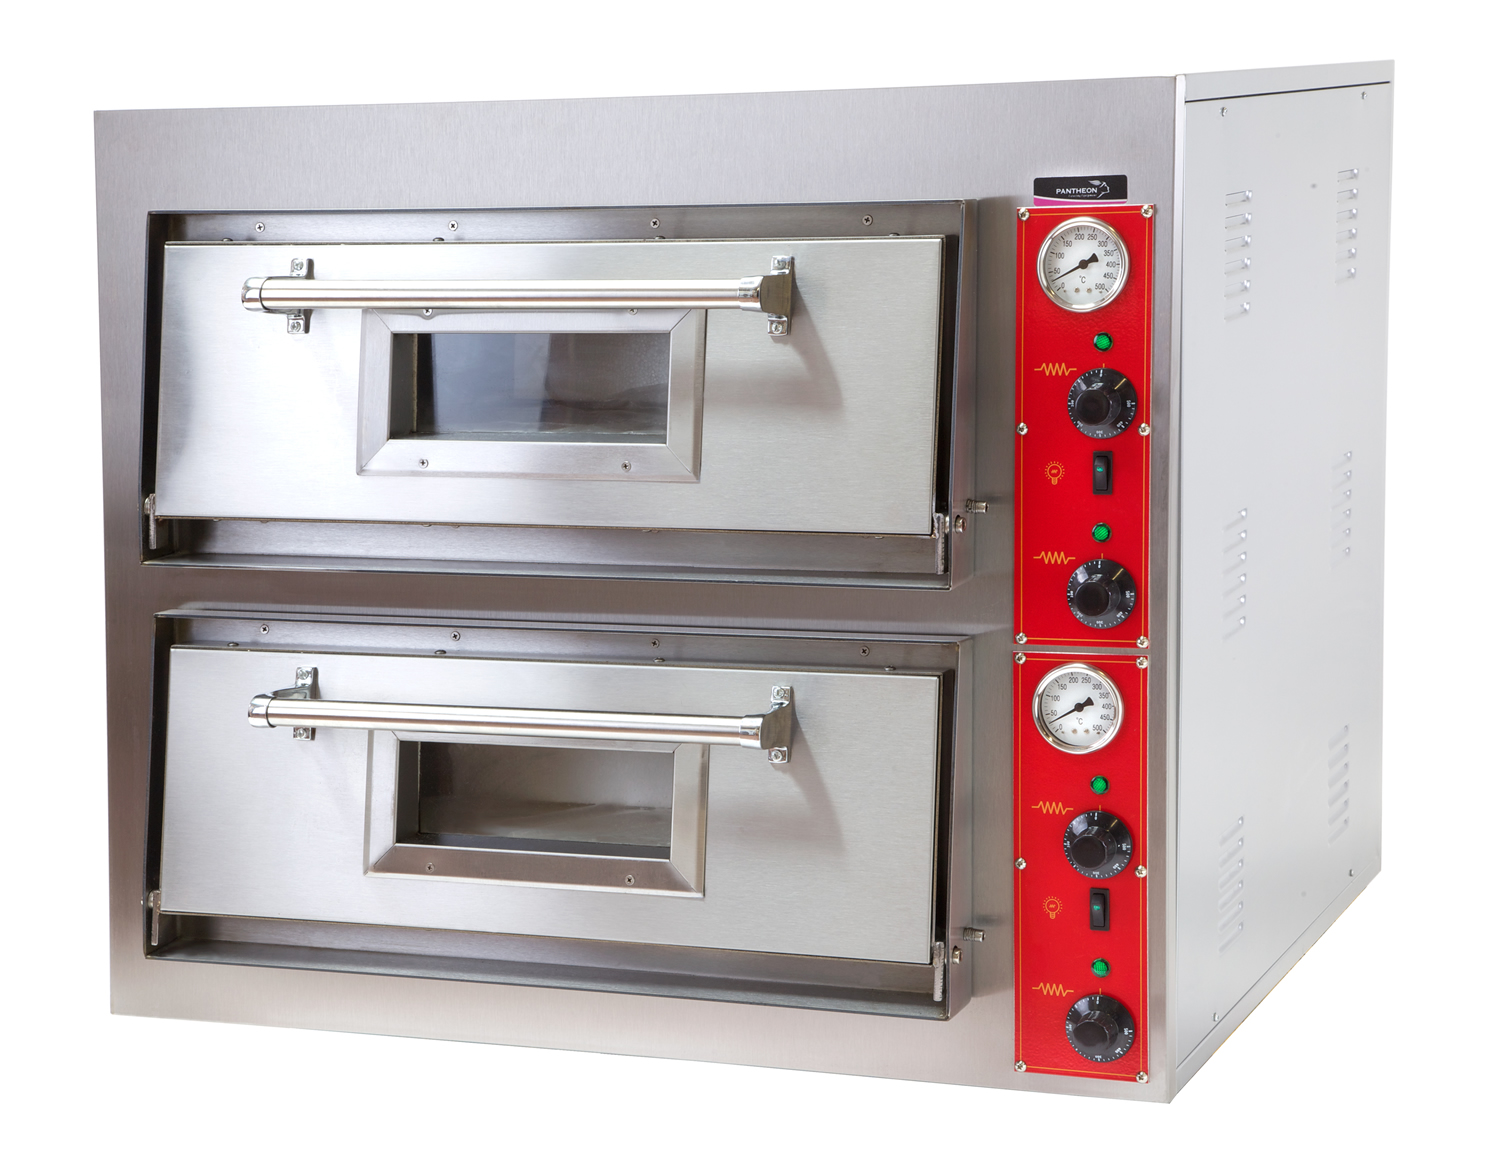 PO4+4 Double Deck Pizza Oven | Pantheon Catering Equipment